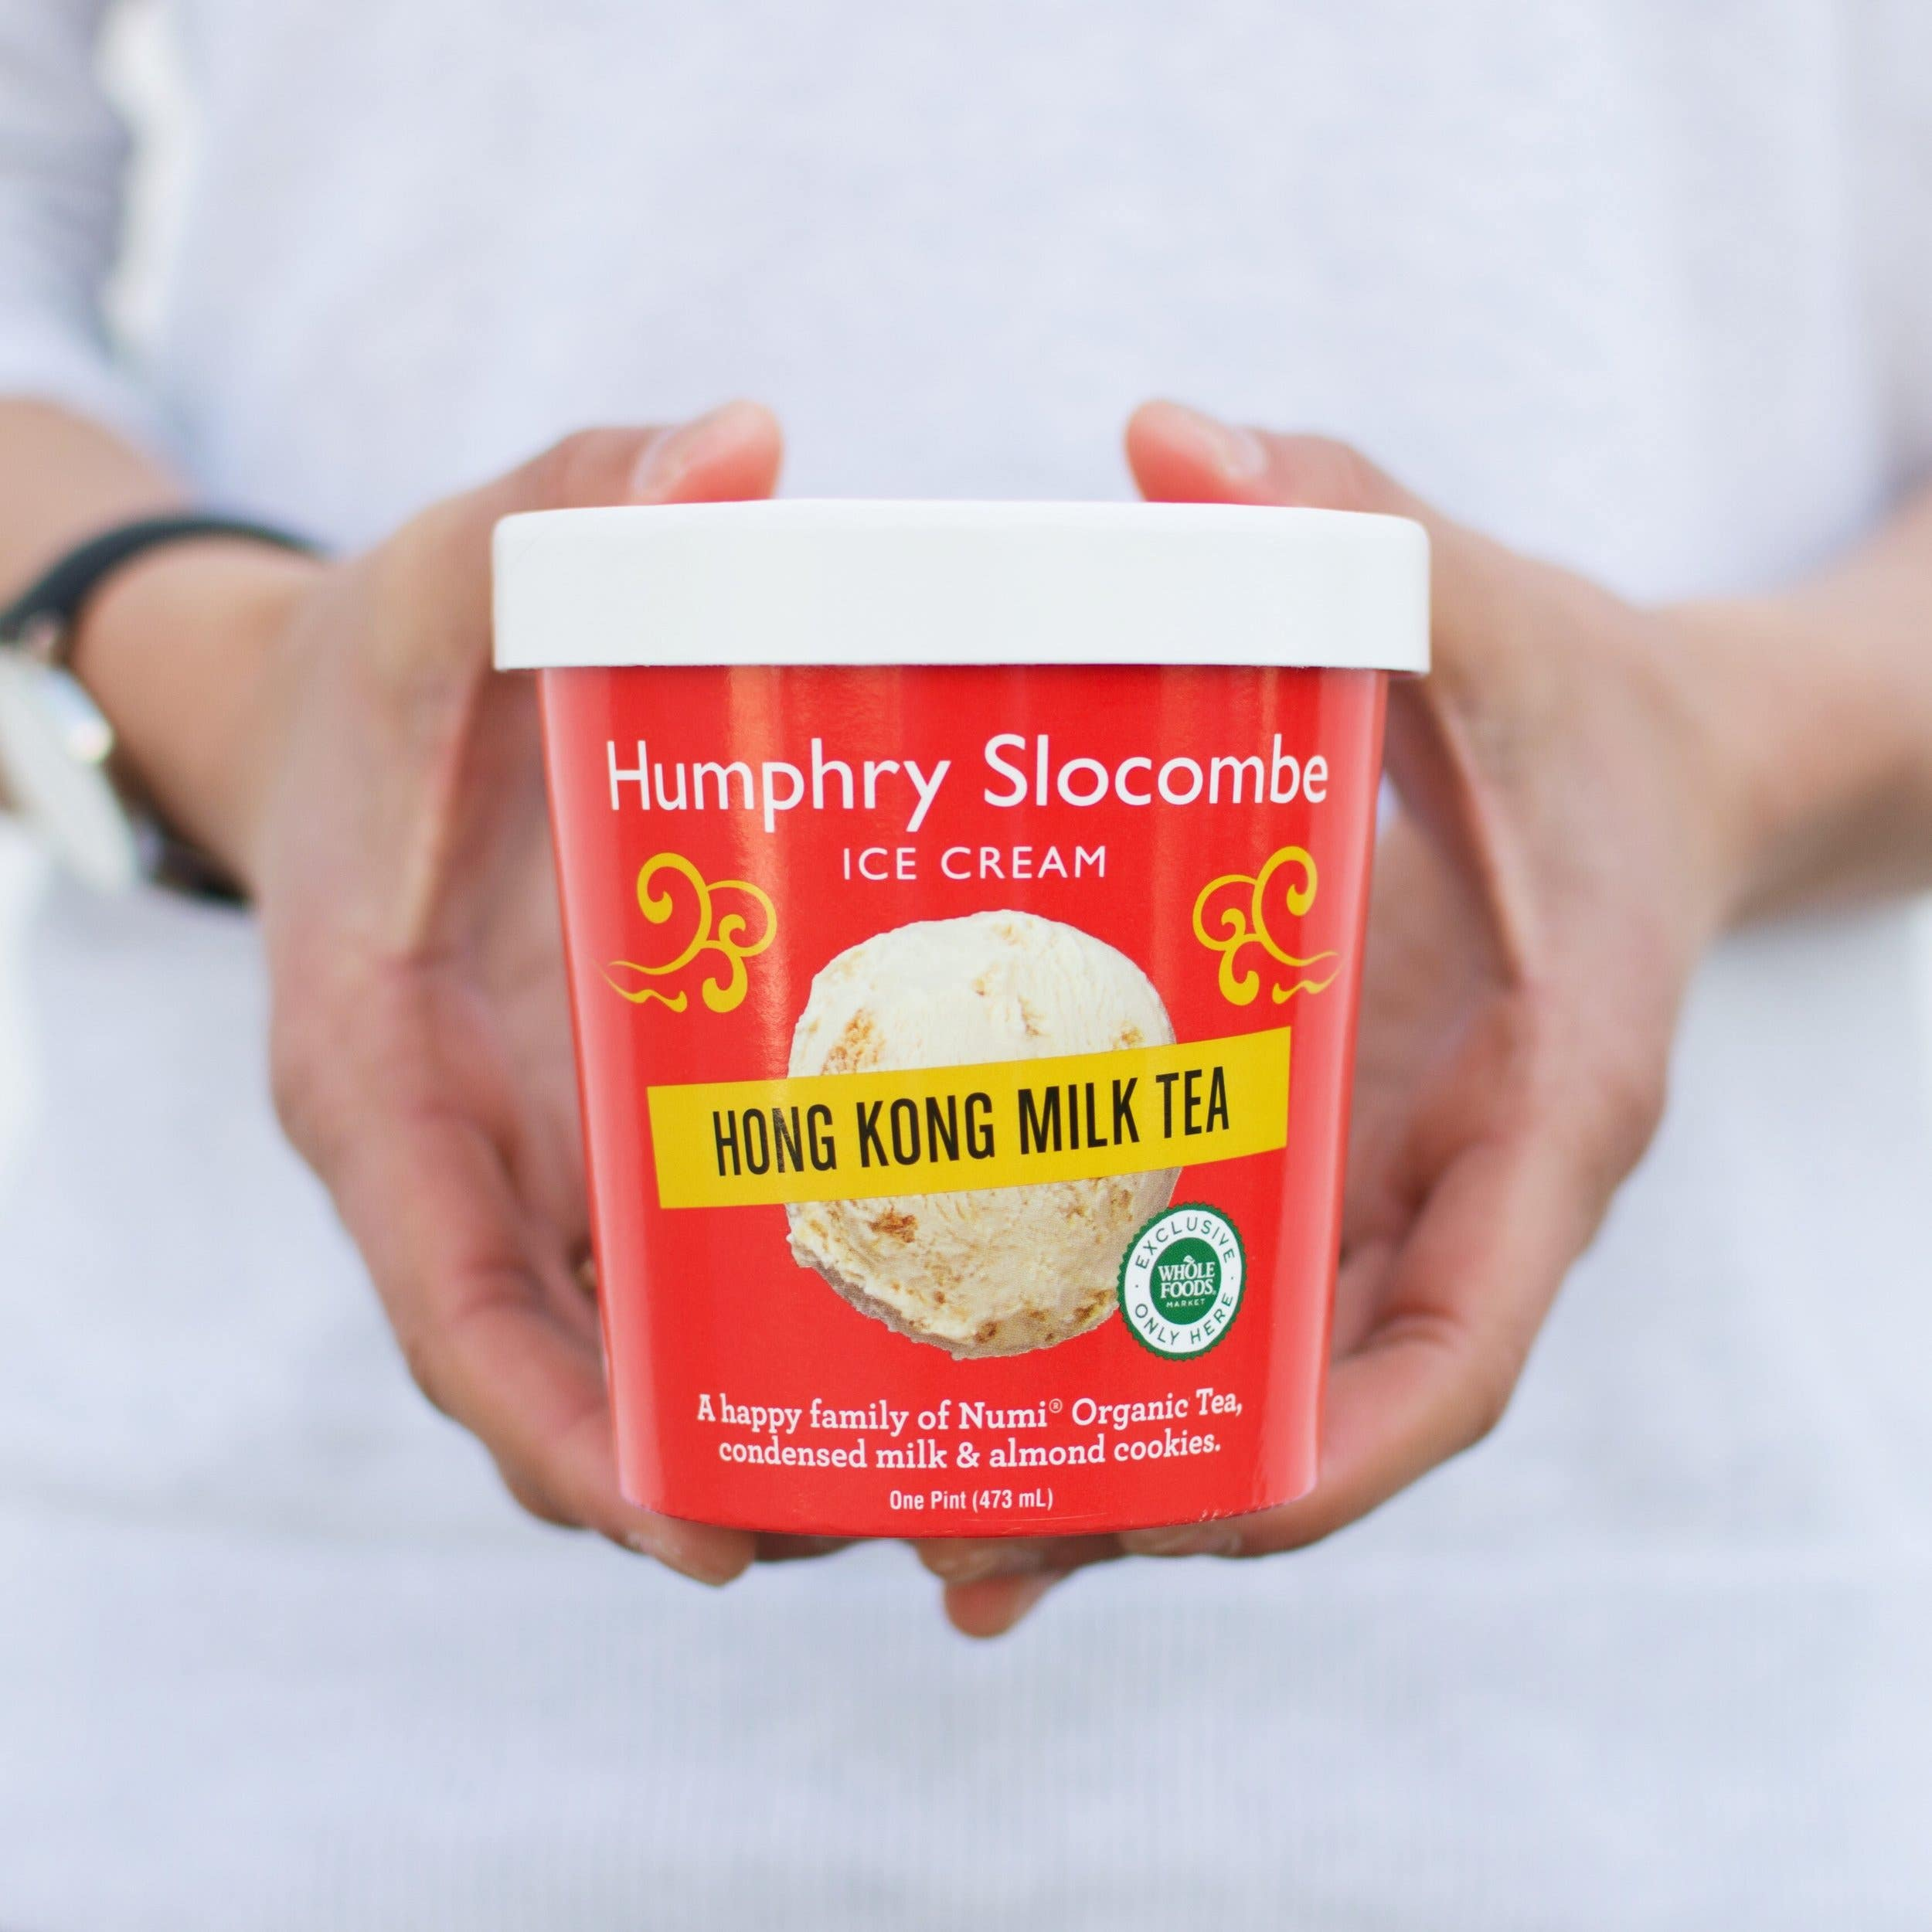 Hong Kong Milk Tea Ice Cream created by Melissa King and Humphry Slocombe